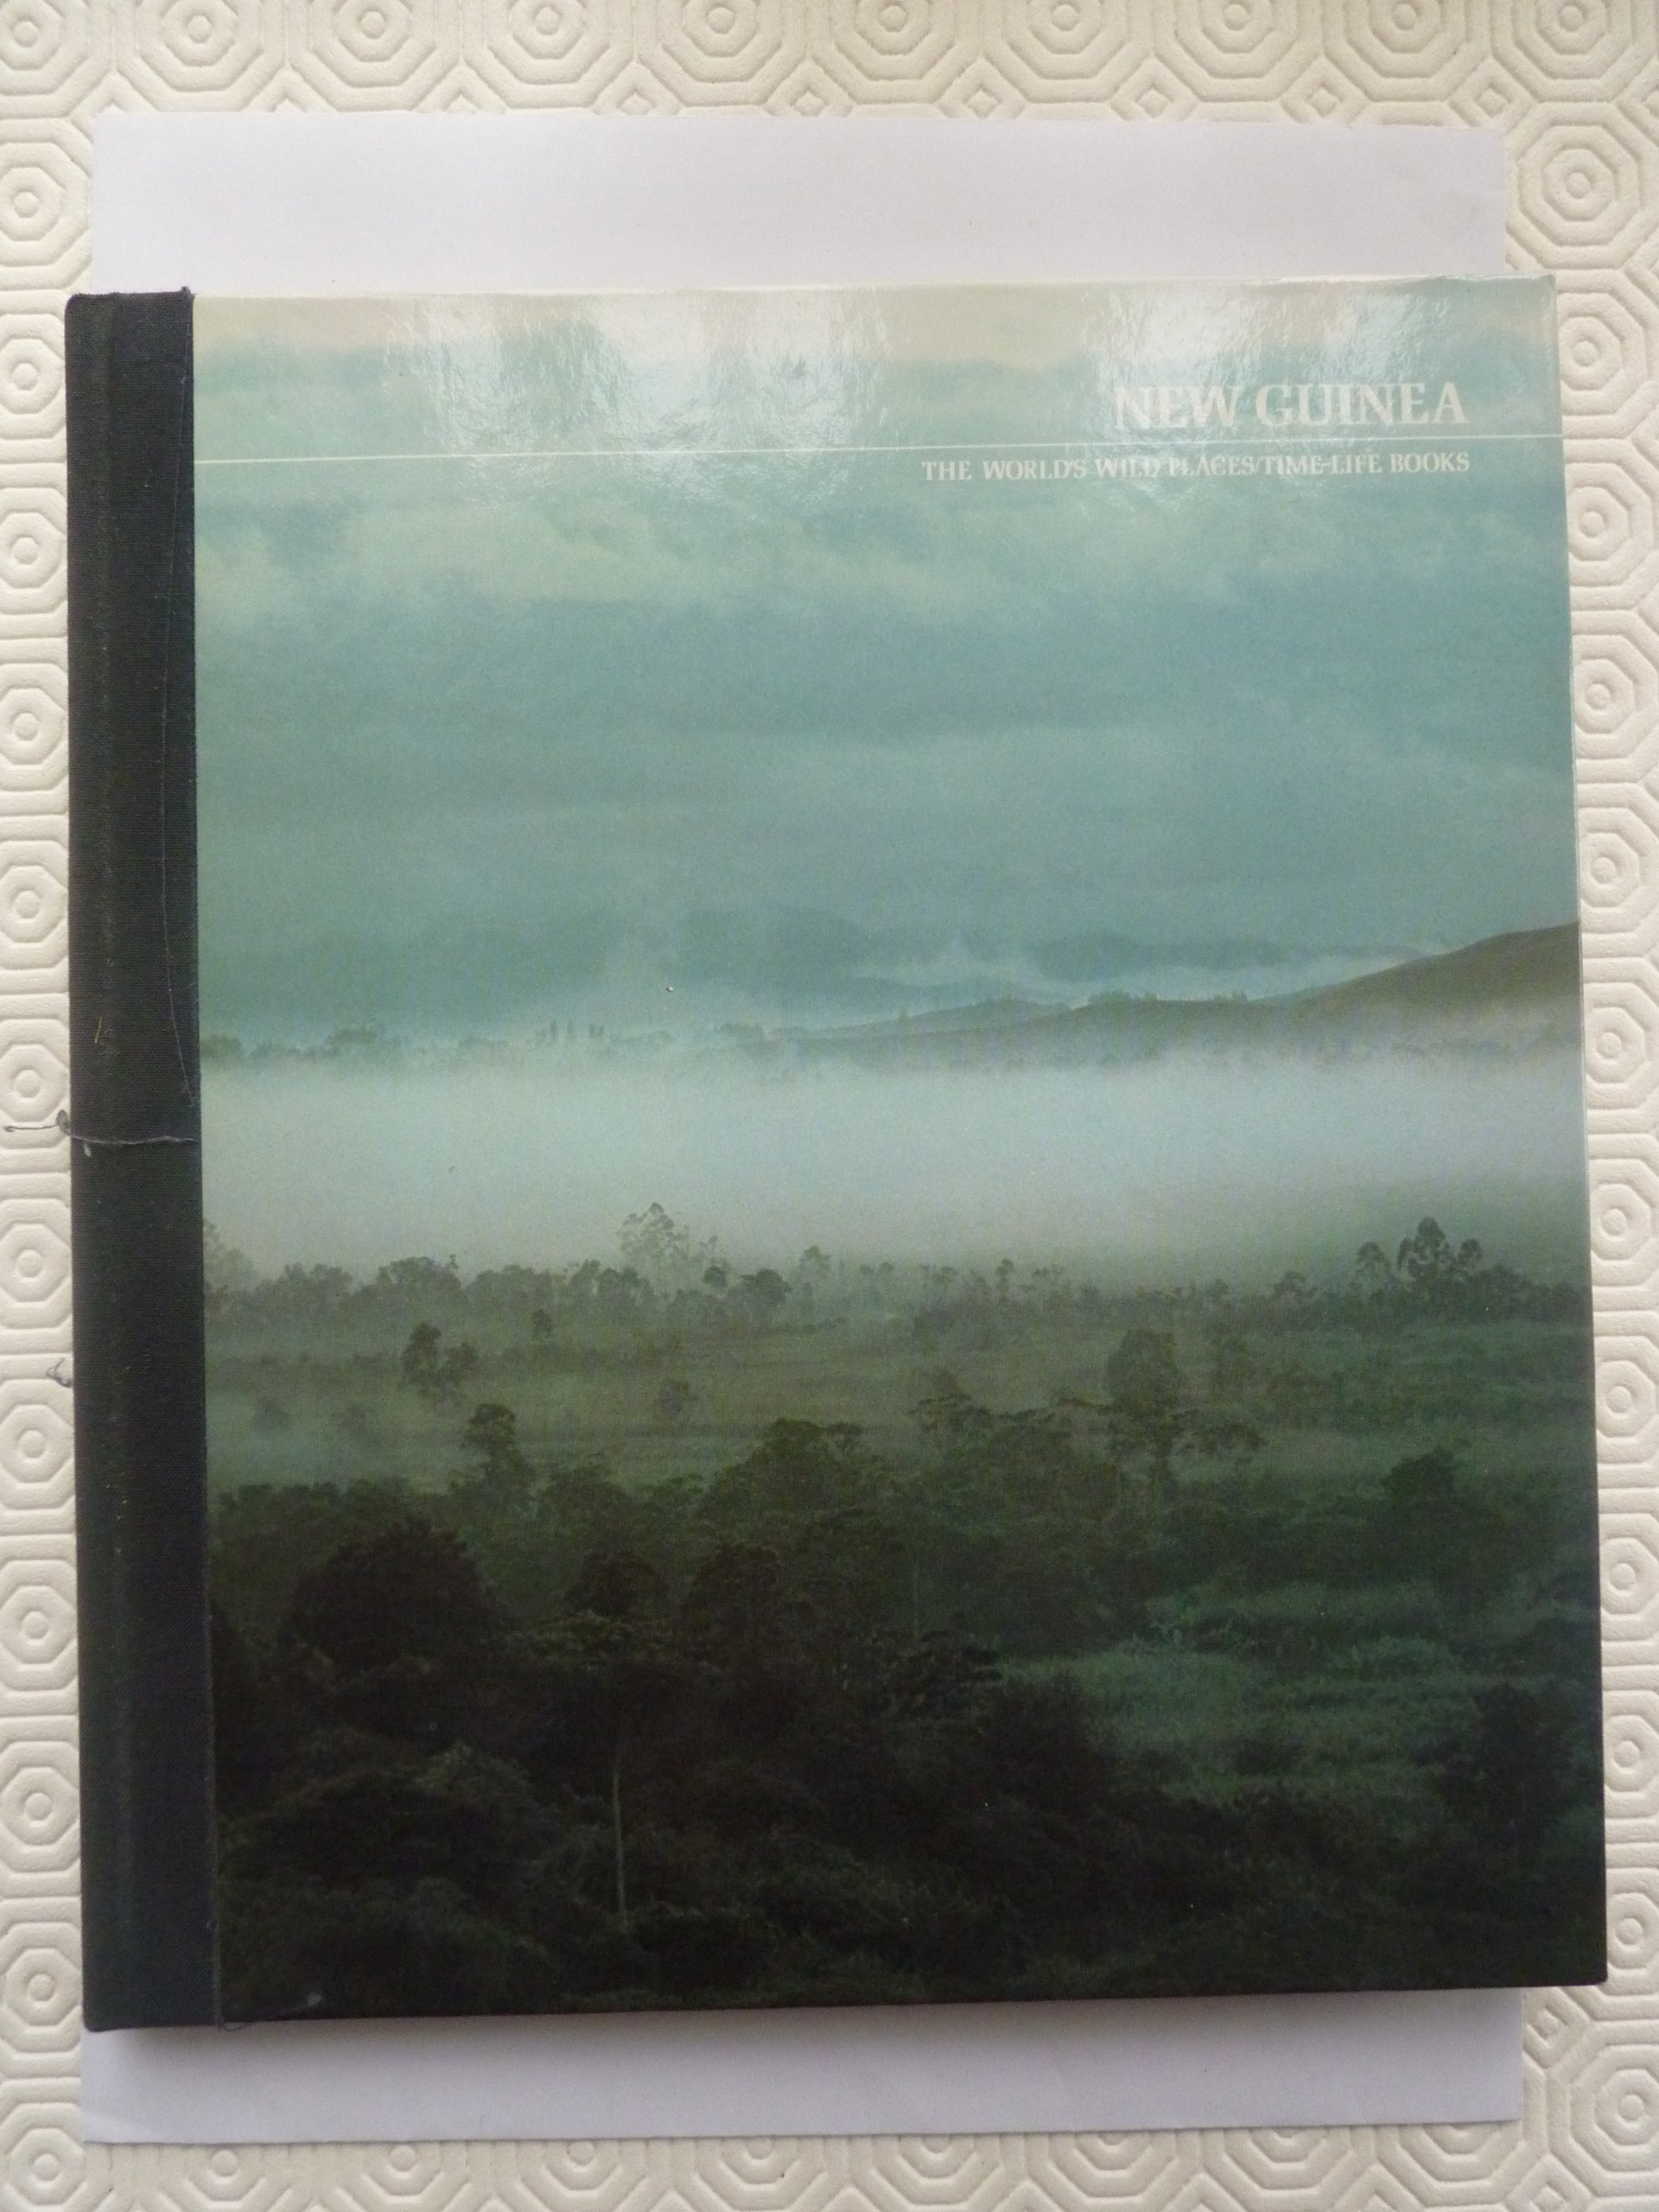 New Guinea (The World's wild places)